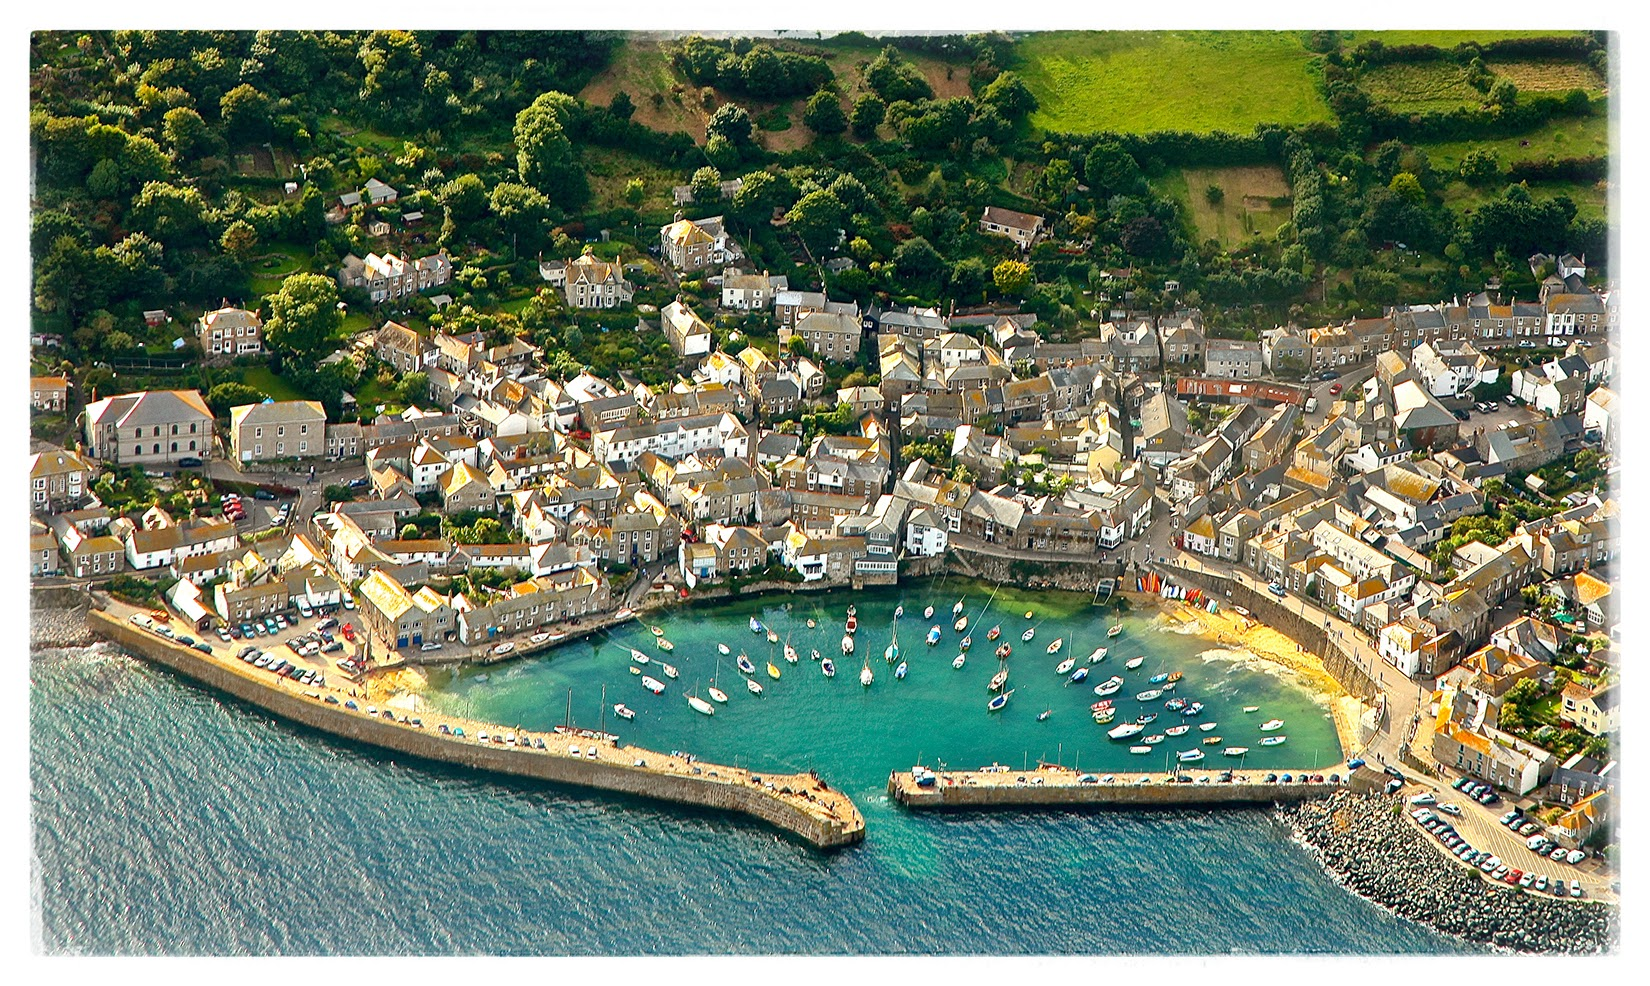 the Cuttlefish Mousehole, Aerial View over the Harbour